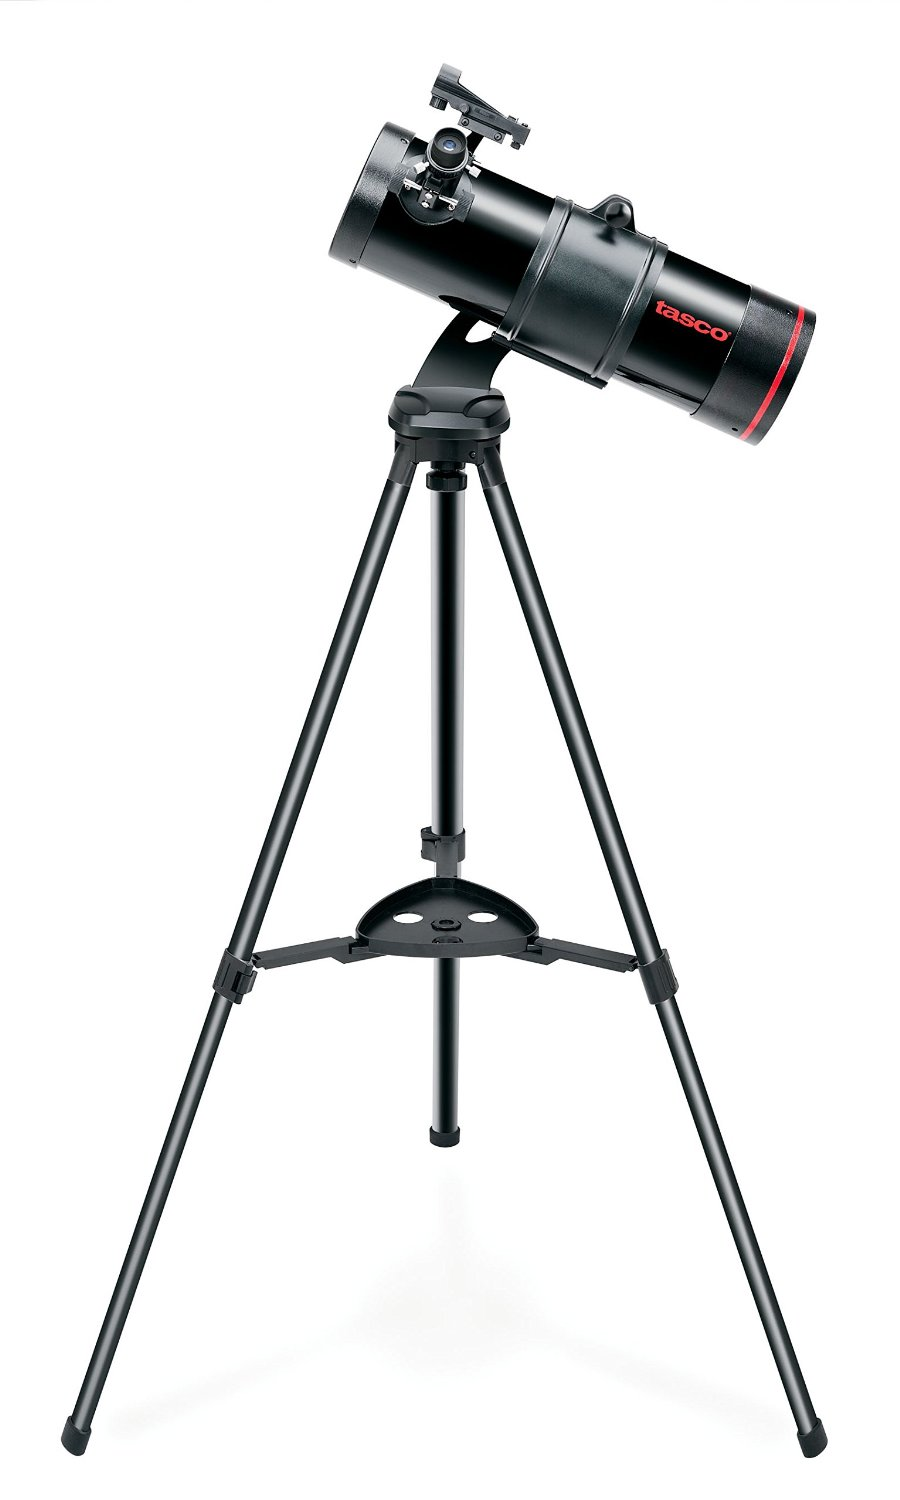 49114500 Tasco Spacestation 114x500mm Reflector ST with Variable LED Red Dot Finderscope Telescope